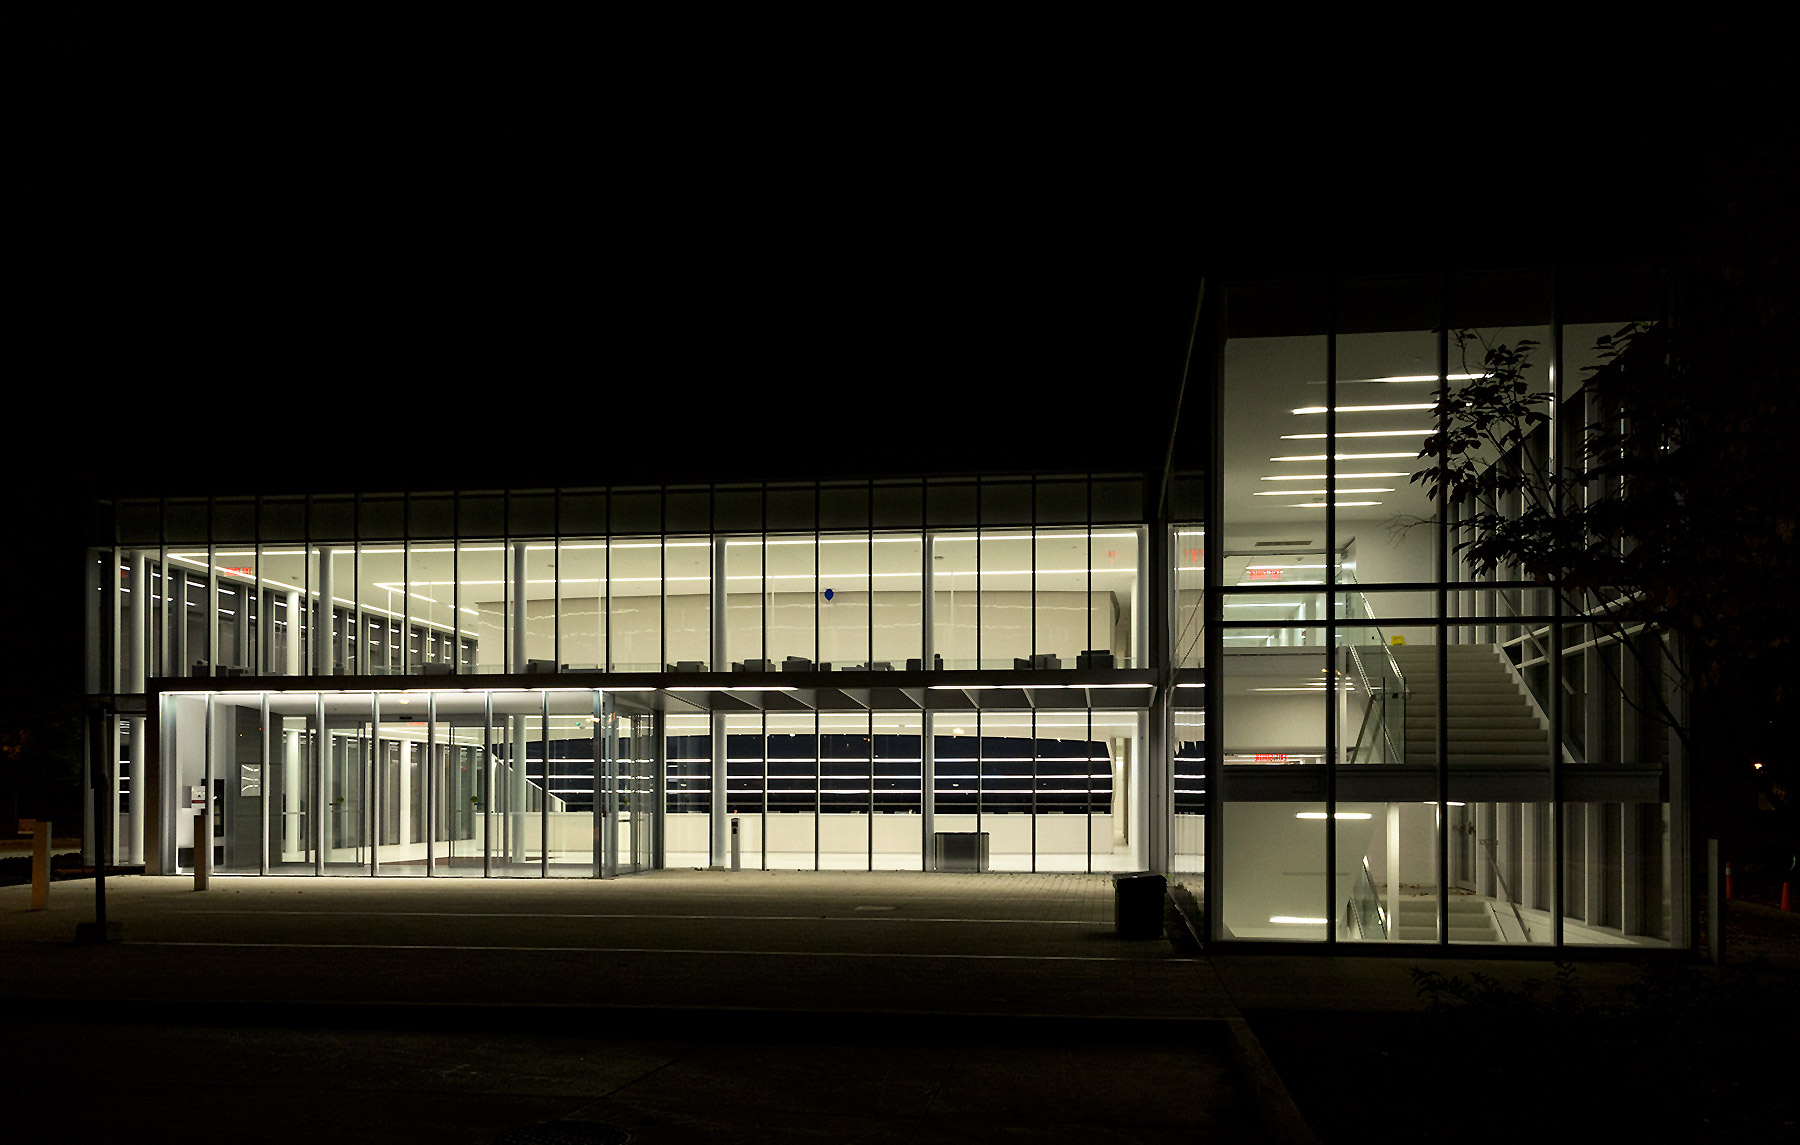 20151012. The Centre of Excellence is a lightbox at night. Glend